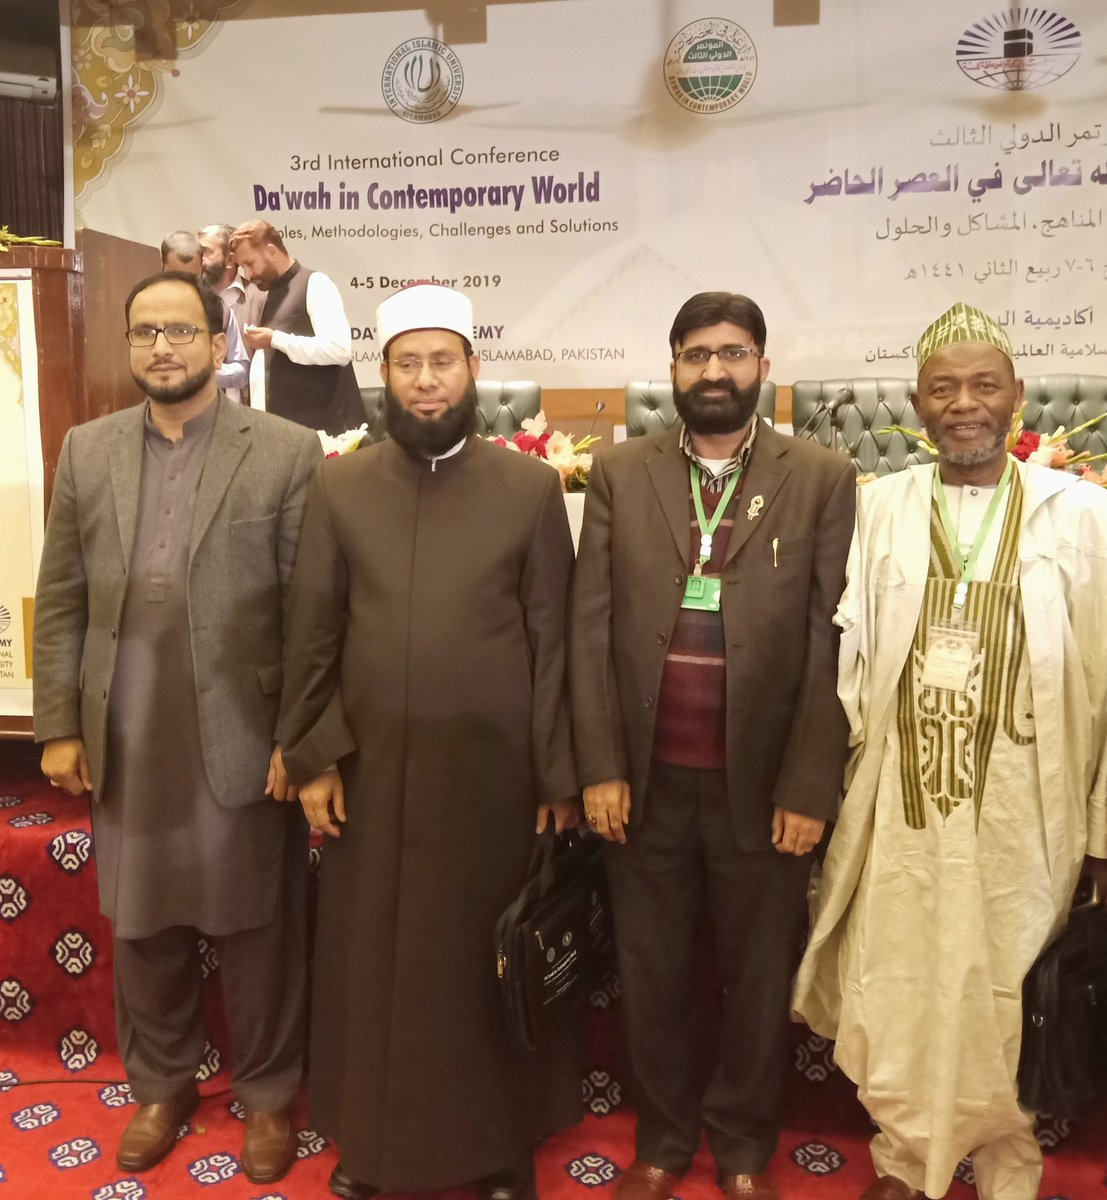 """Participation in 3rd International Conference on the topic """"Dawah in Contemporary World"""" Principles, Methodologies ,Challenges and Solutions, at Dawah Academy International Islamic University Islamabad,Group with of participants and Scholars from across the globe."""